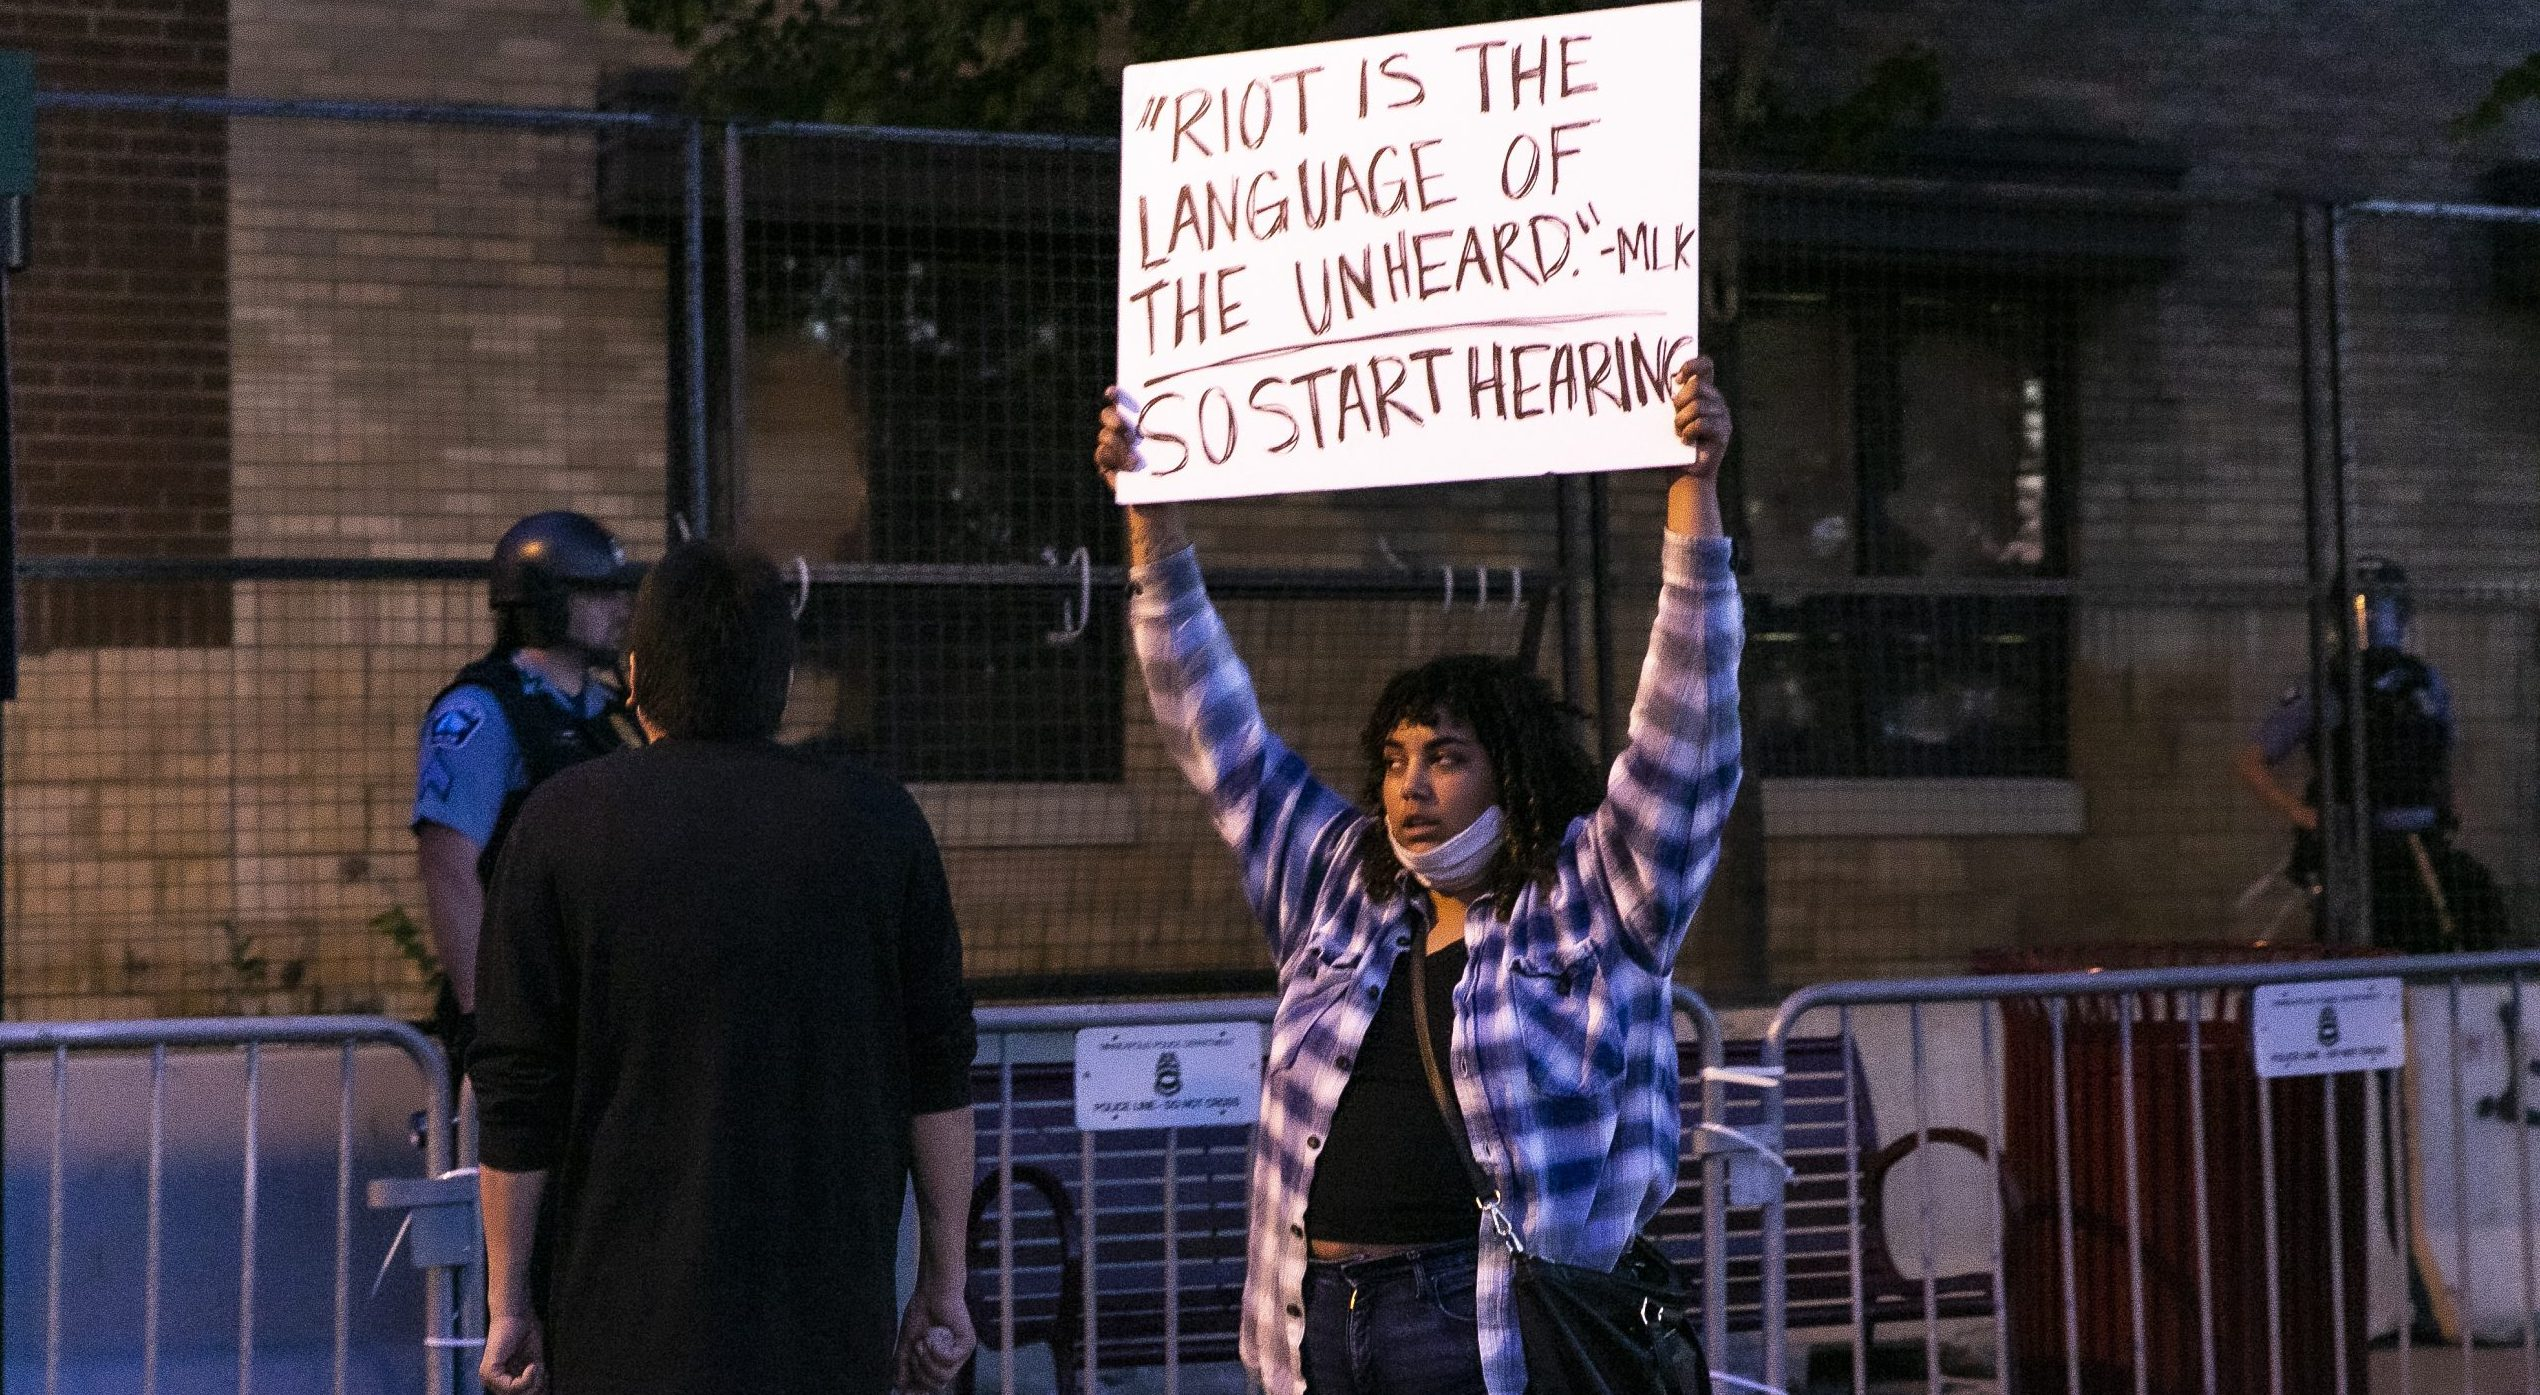 The are no 'riots' in Minneapolis after the death of George Floyd